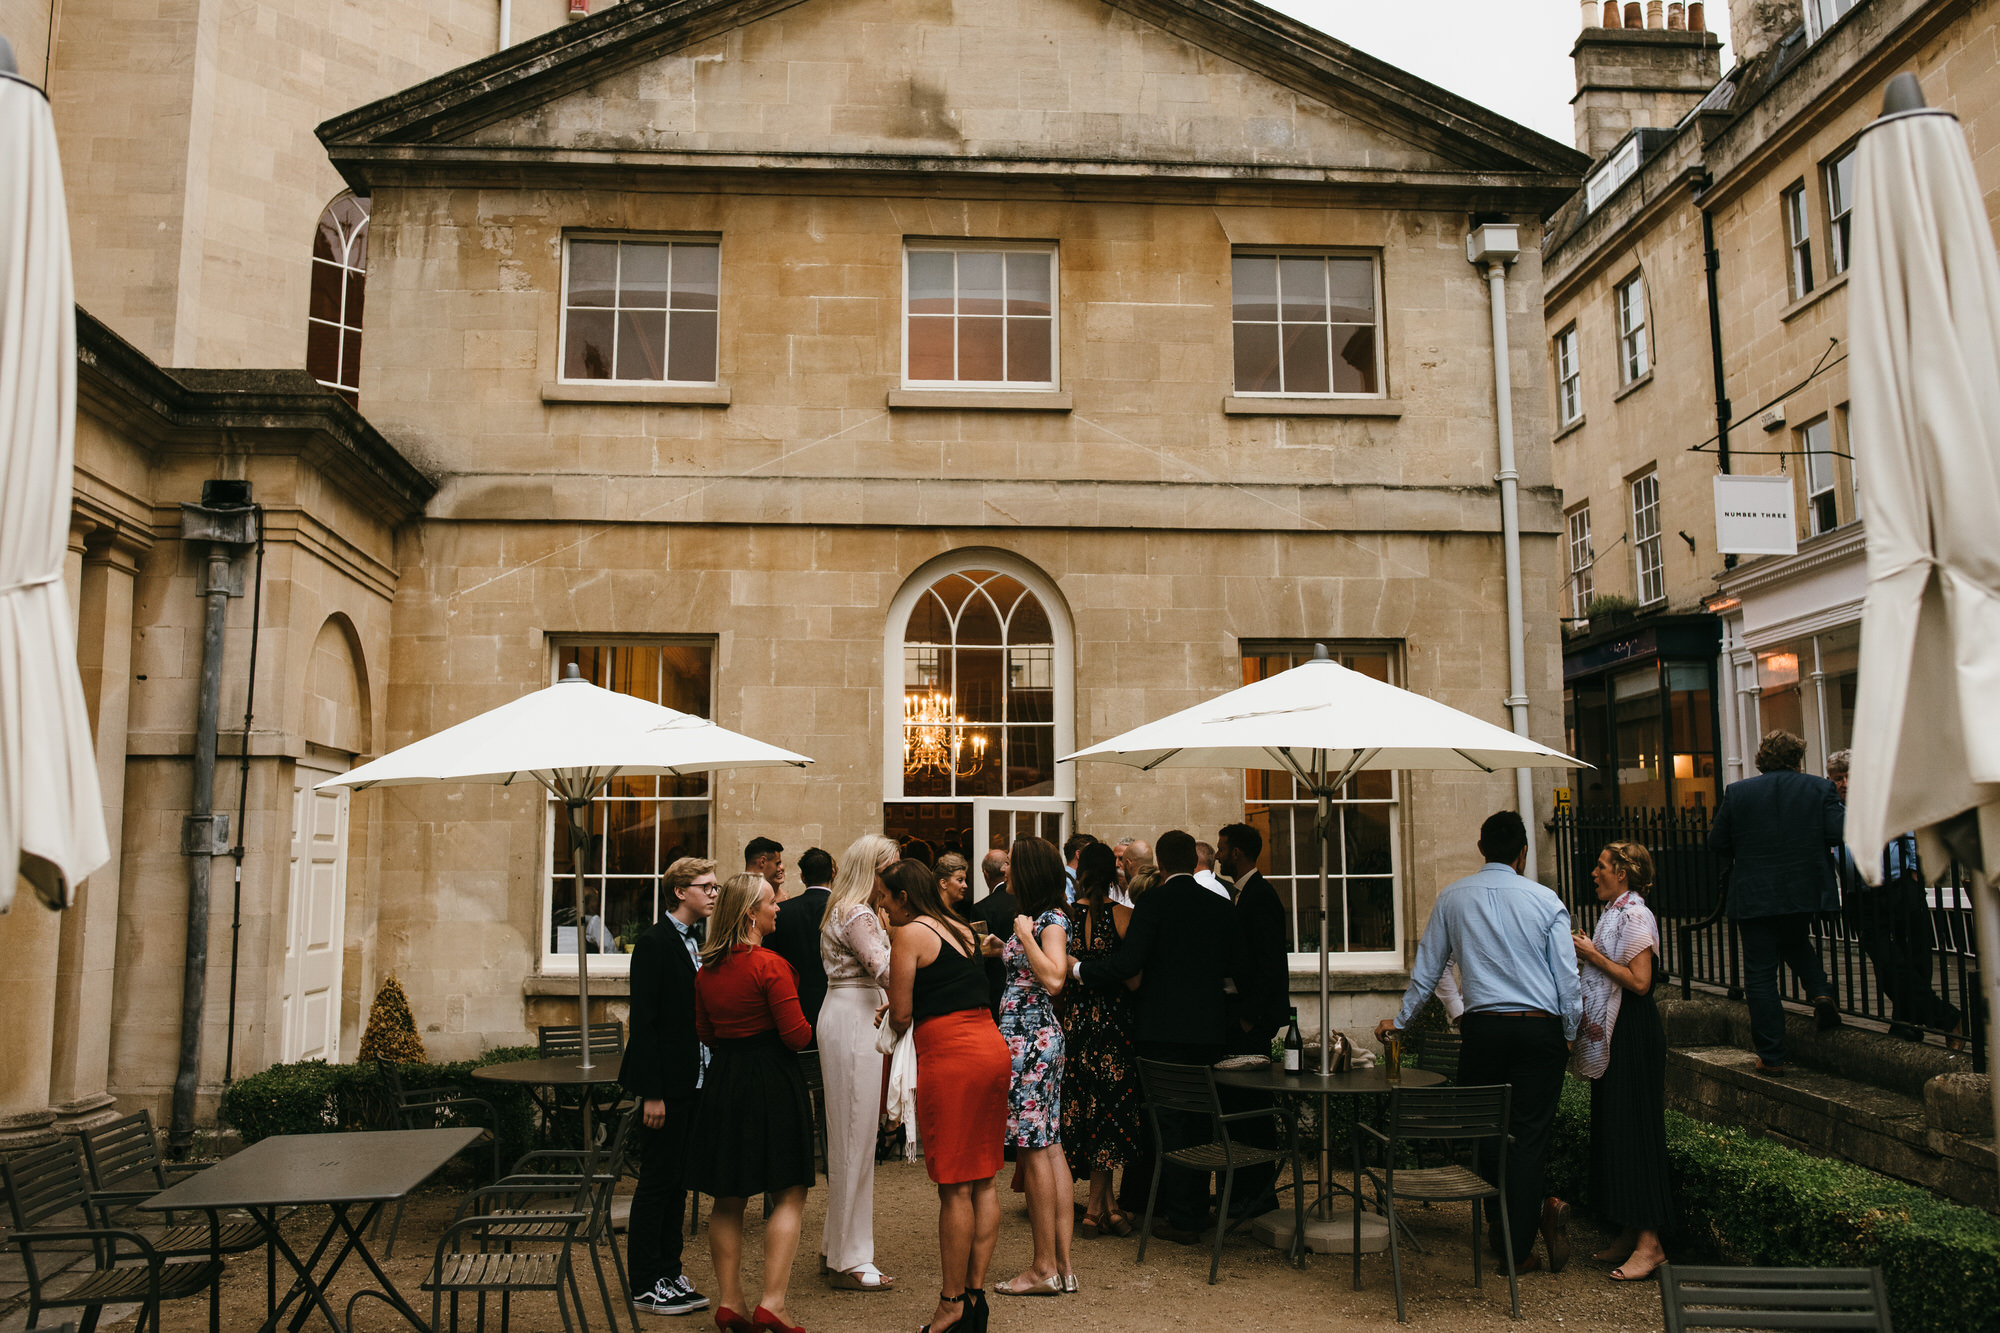 Assembly rooms bath wedding venue simon biffen photography 12